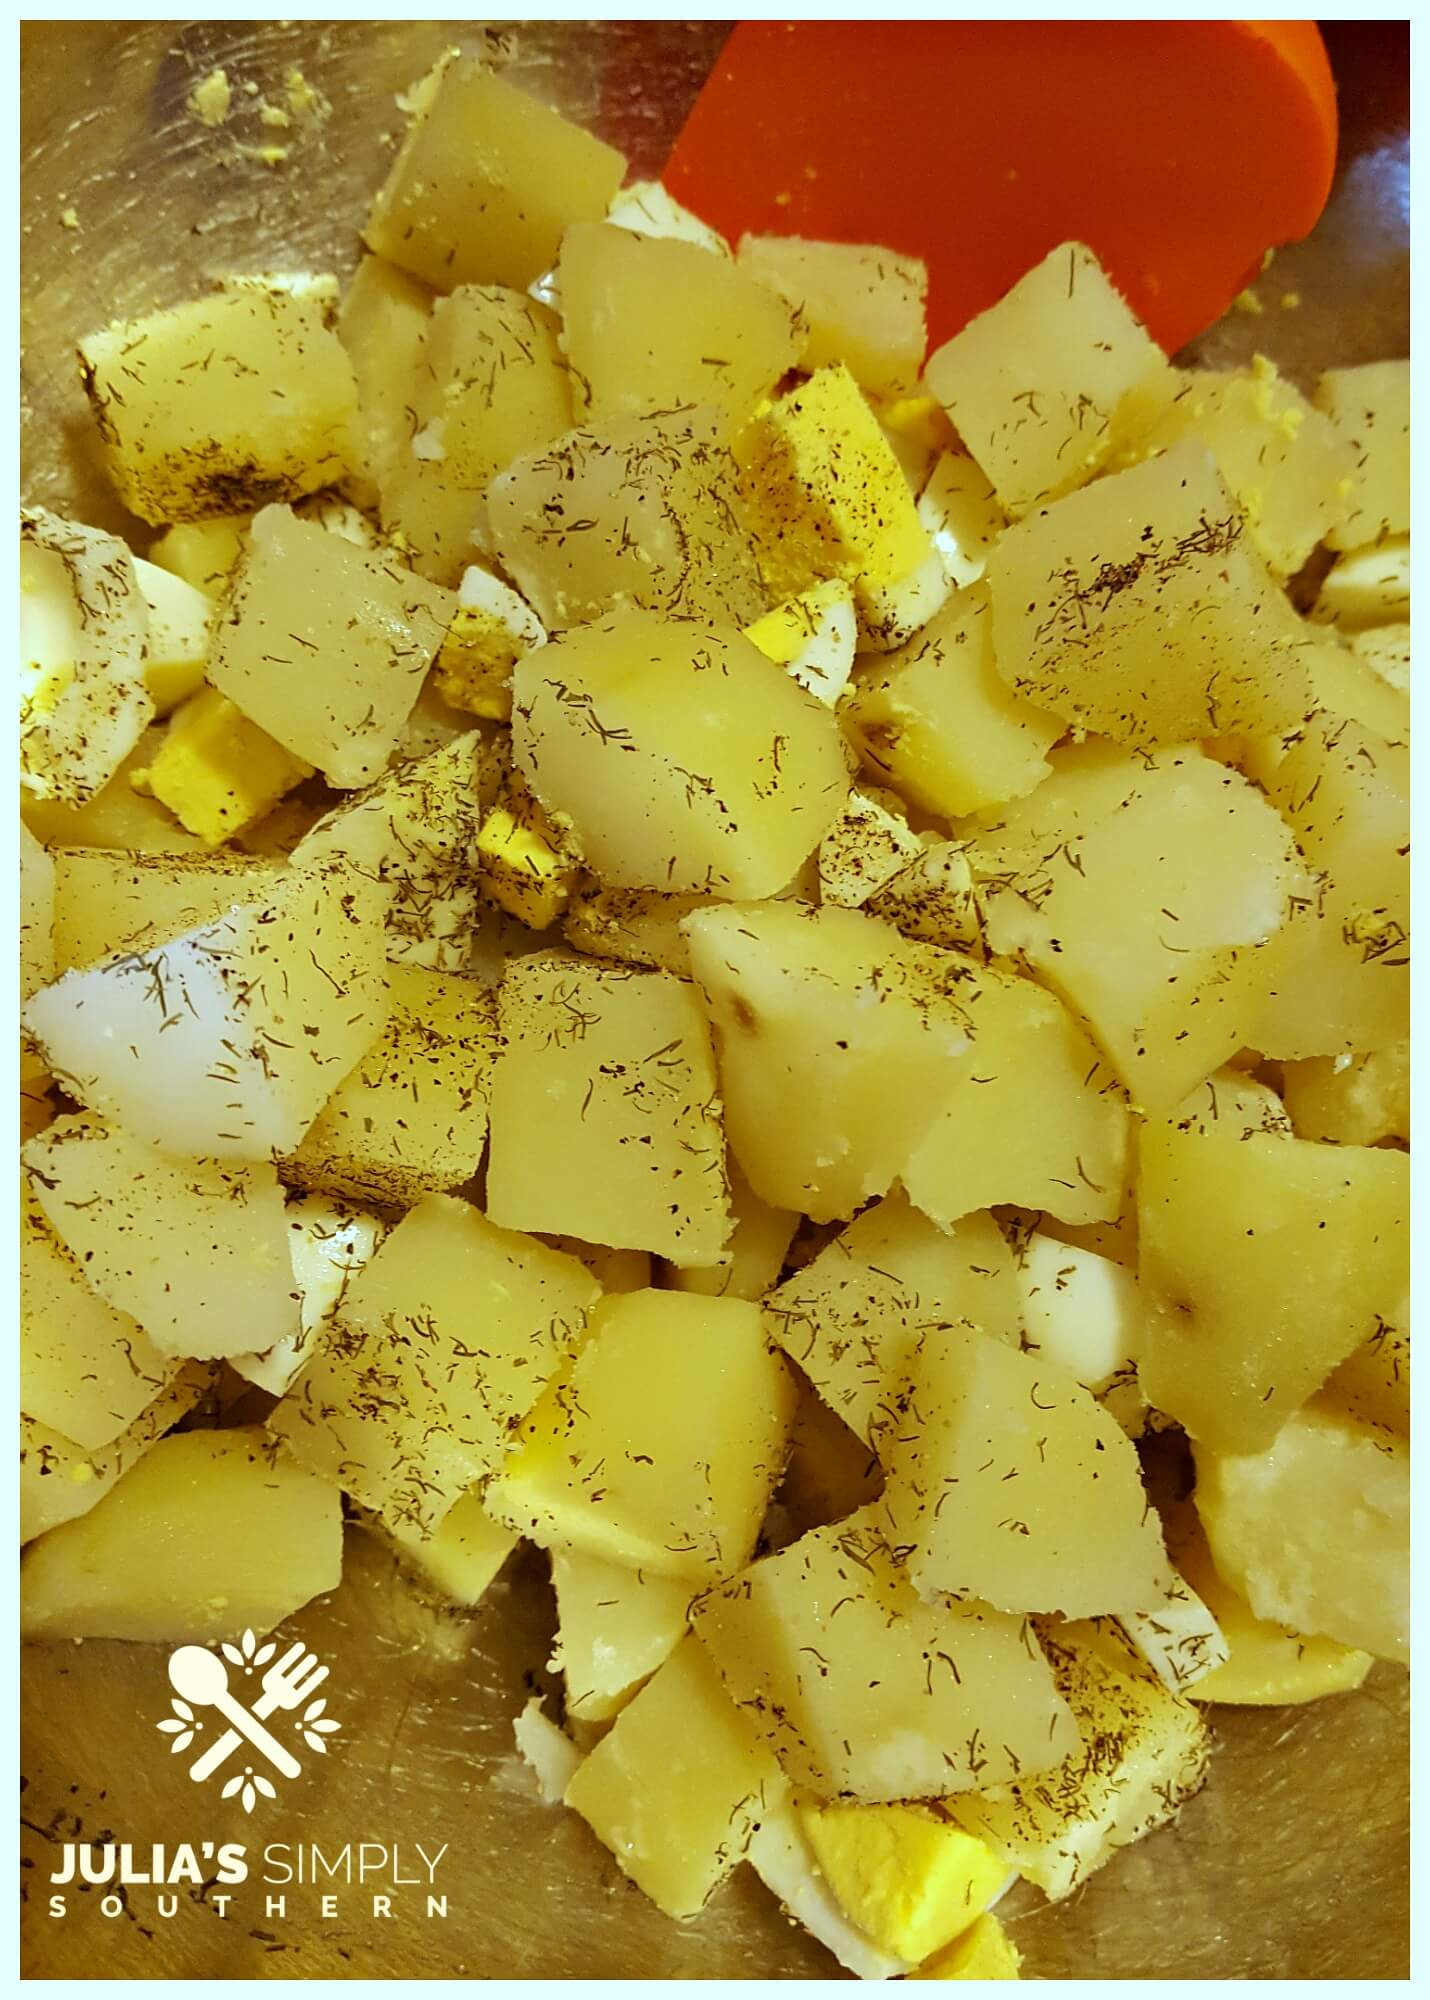 Making an easy potato salad for 2 people